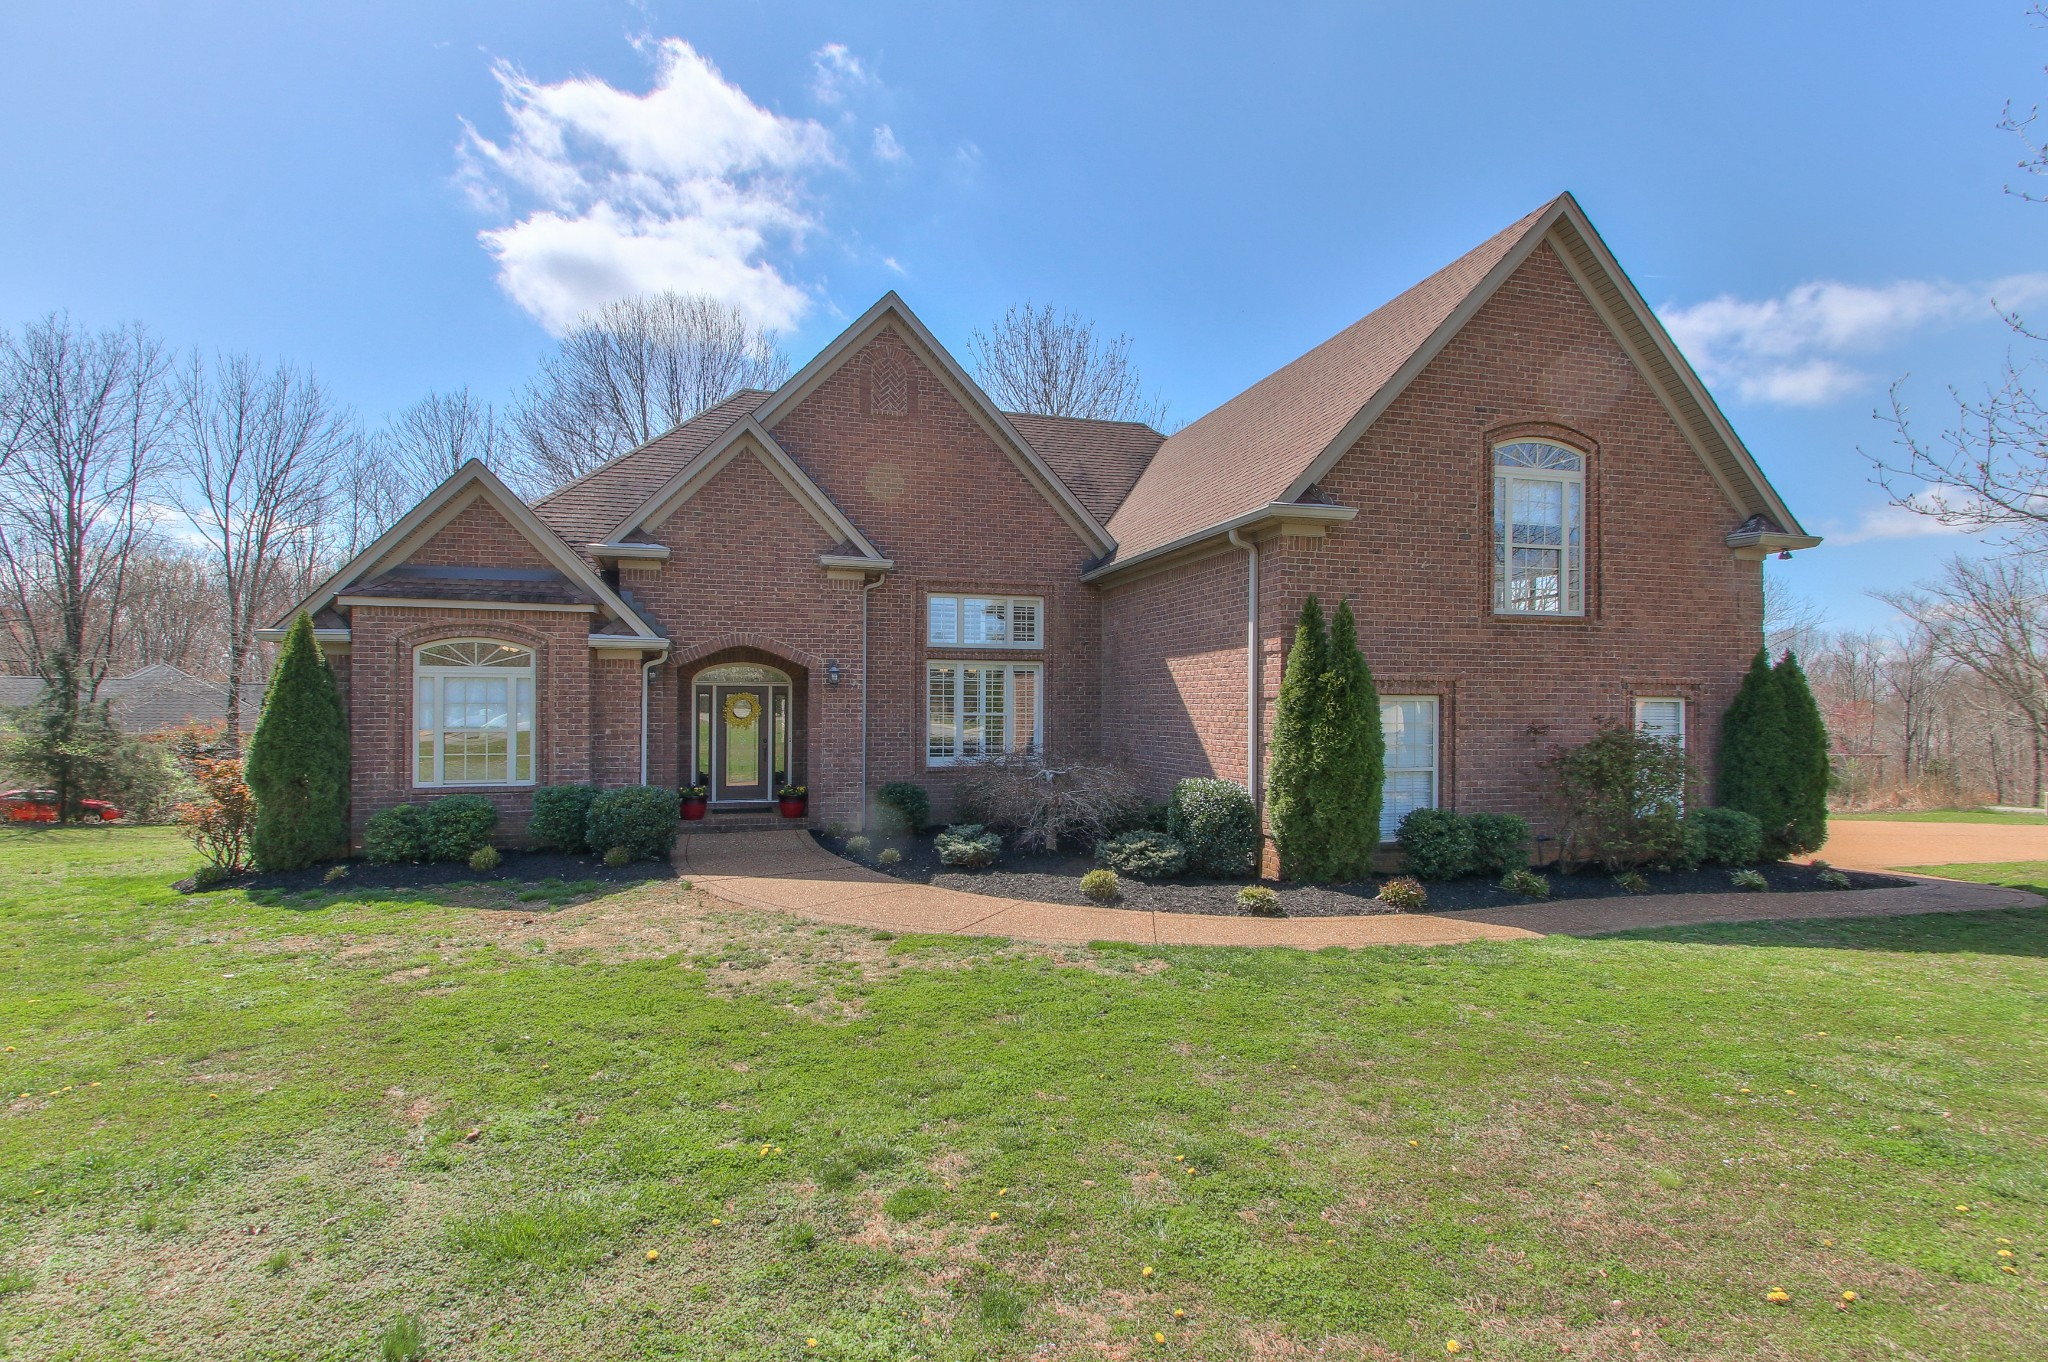 2049 Pebblebrook Dr Property Photo - Ashland City, TN real estate listing